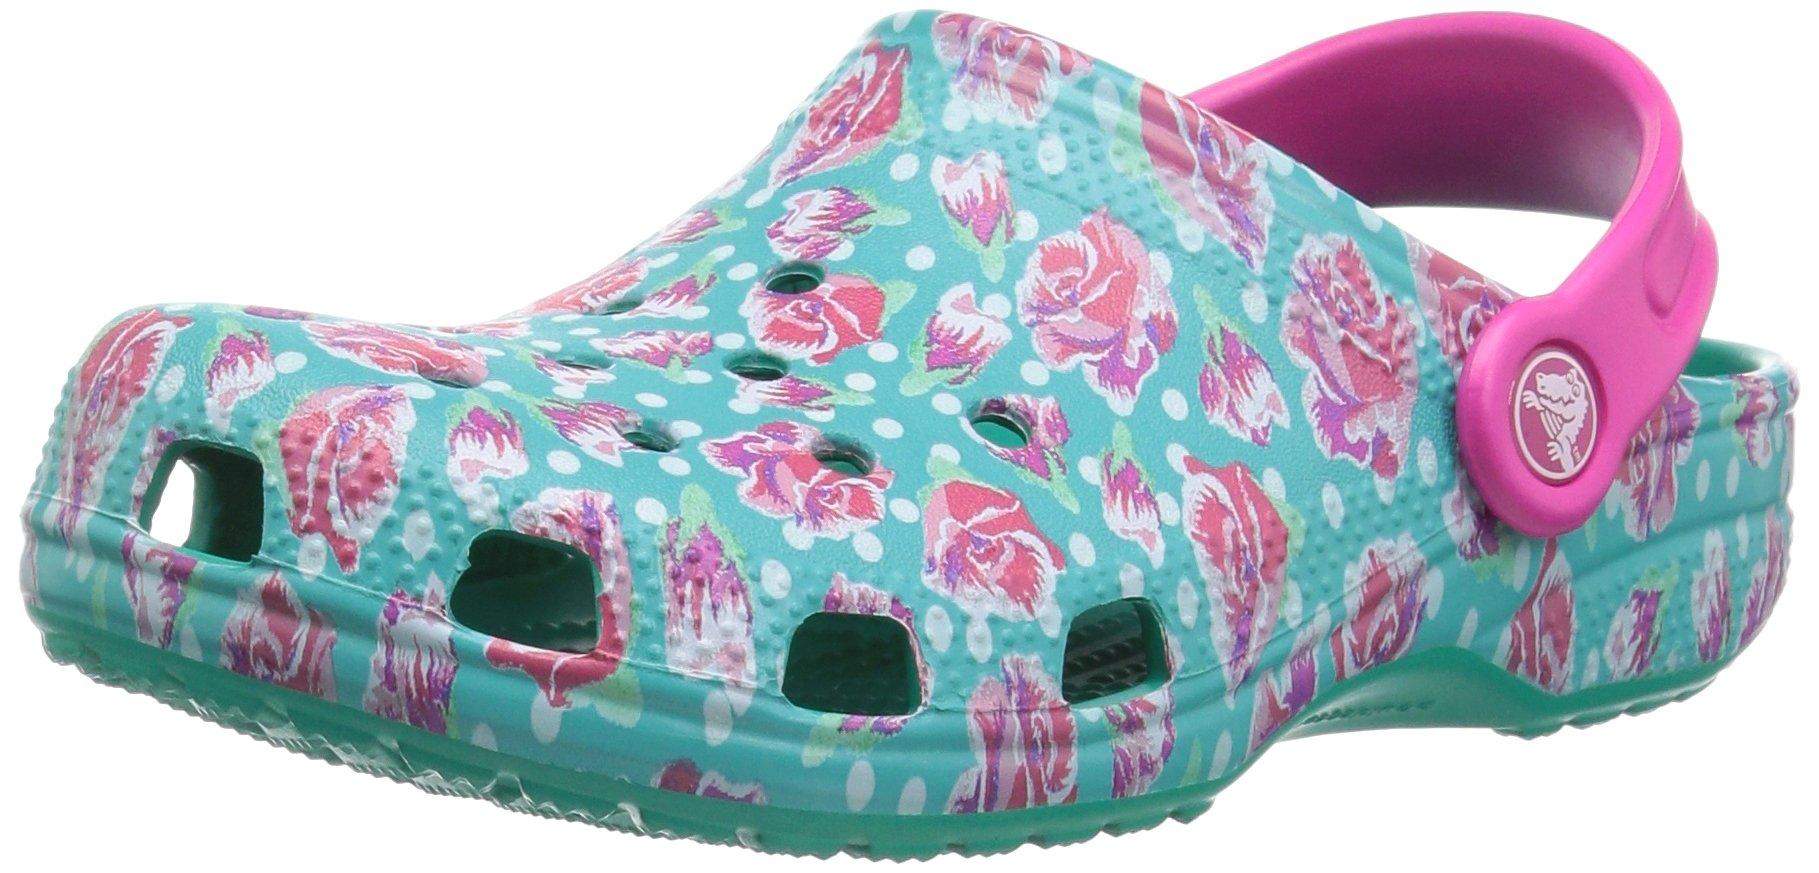 Crocs Classic Graphic Clog Kids, Tropical Teal 3 M US Little